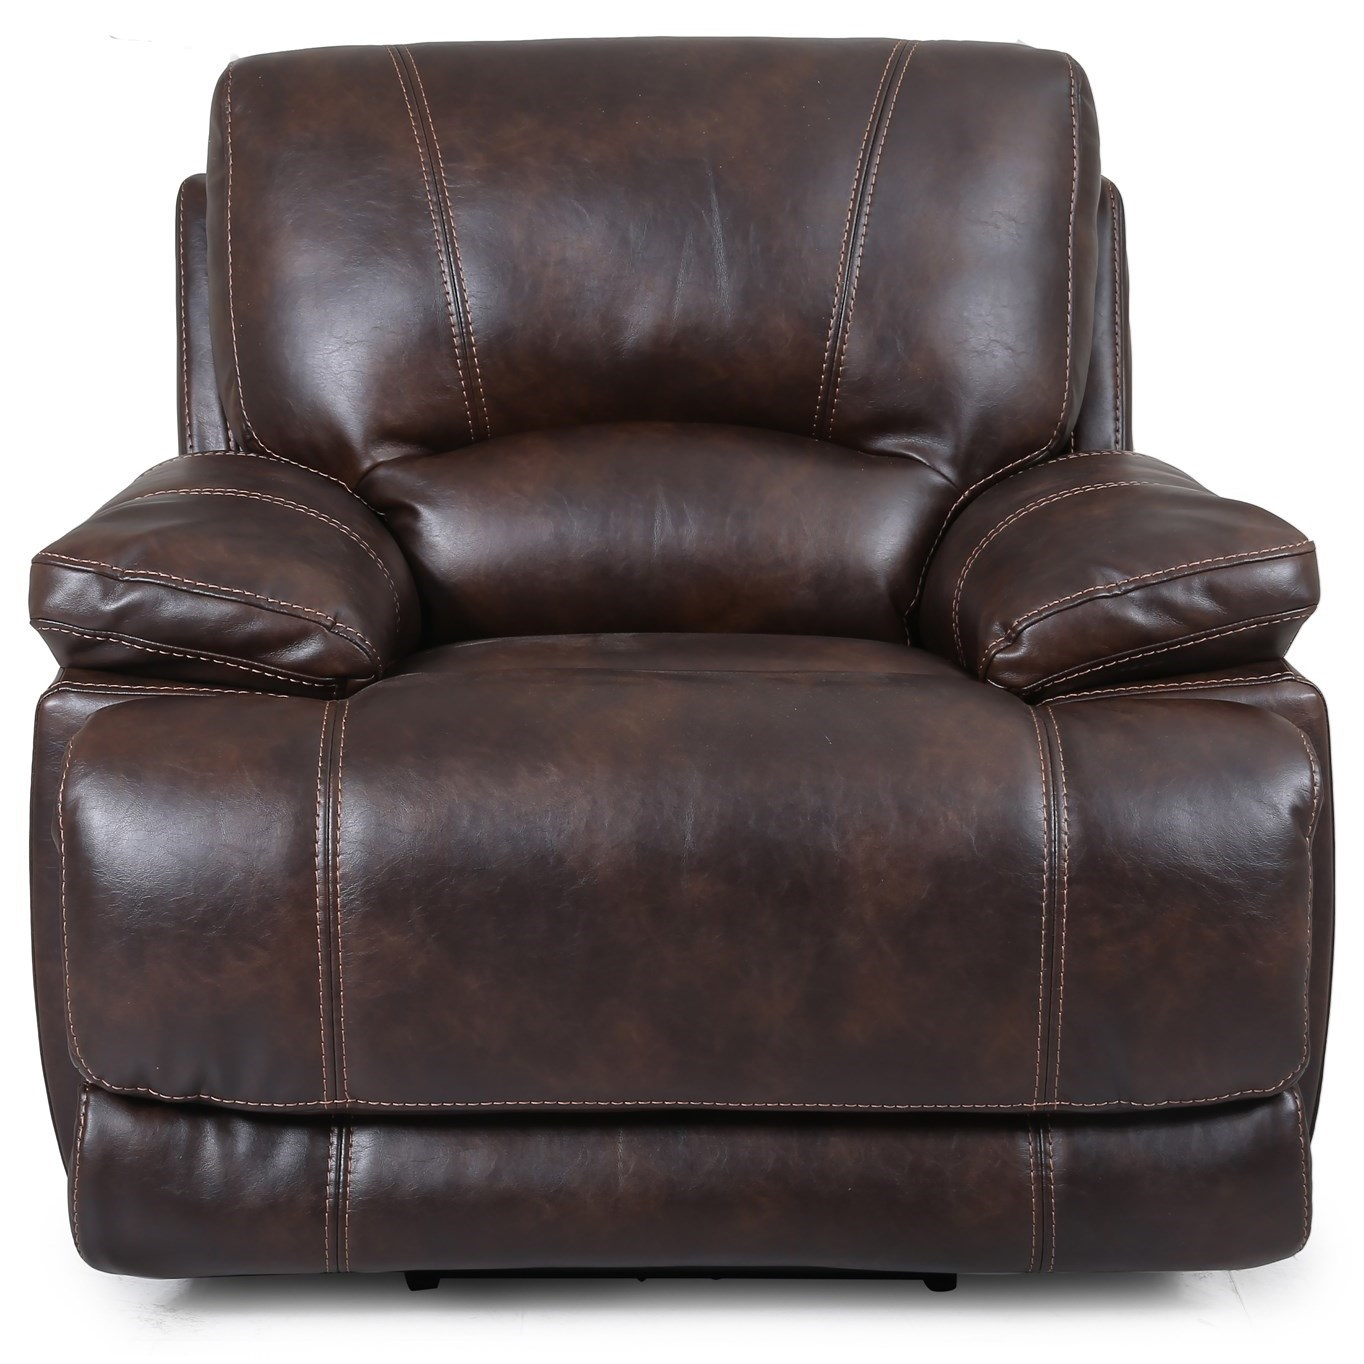 5185 Power Recliner by Cheers at Lagniappe Home Store